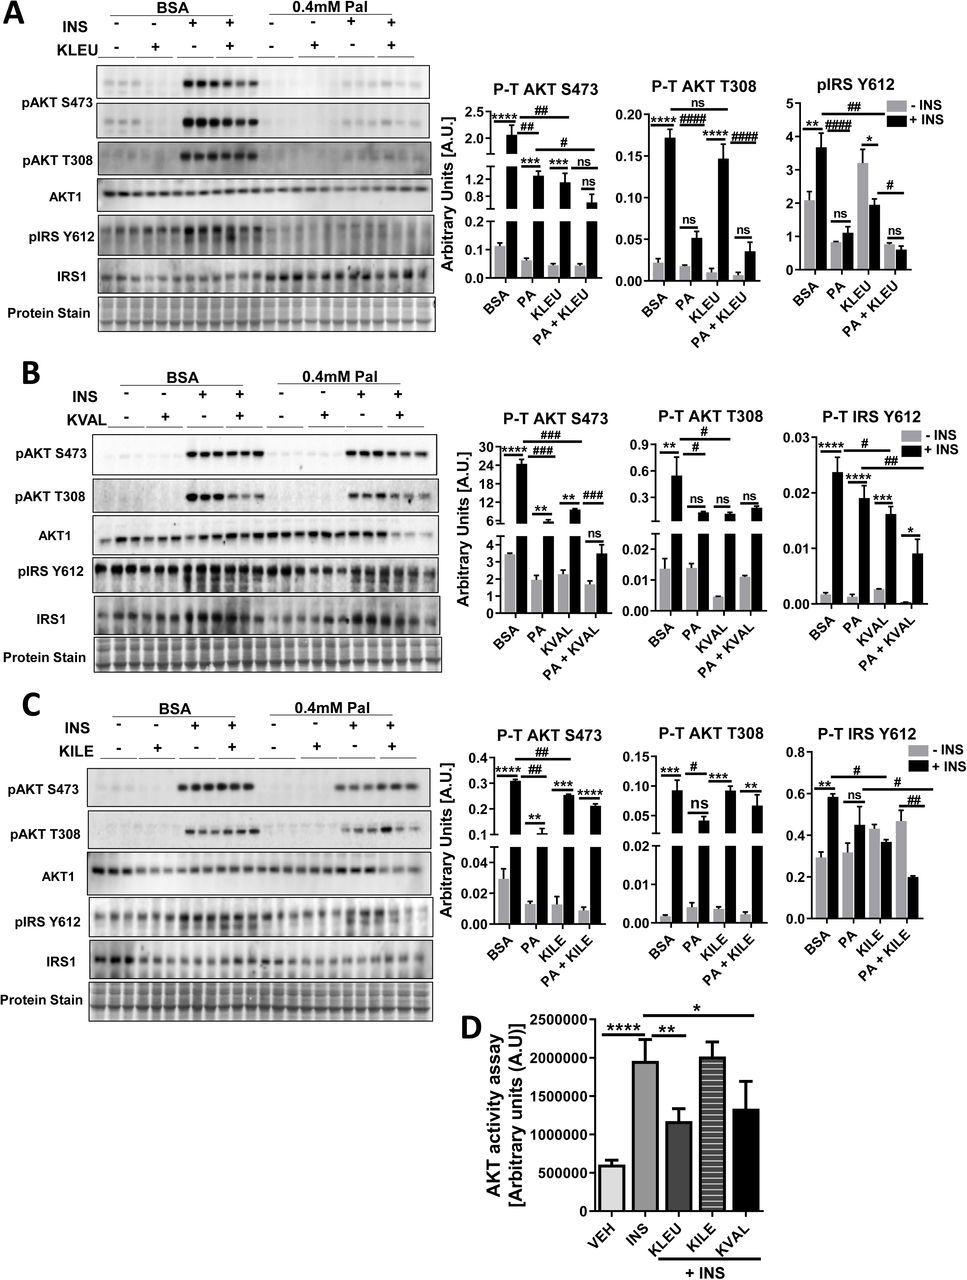 BCKAs impair insulin signaling in <t>C2C12</t> cells. (a-c) Differentiated C2C12 cells were pre-incubated with either 2% BSA or 2% BSA conjugated with 0.4mM palmitate for 16 hr followed by either a) 5mM ketoleucine, b) ketovaline or c) ketoisoleucine treatment for 30 mins. Myotubes were subjected to 100 nM insulin for 15 mins in presence or absence of individual BCKAs. Immunoblot and densitometric analysis of total and phosphorylated AKT Ser 473 and Thr 309, total and phosphorylated IRS Tyr 612. Statistical analysis was performed using a two-way ANOVA followed by a Tukey's multiple comparison test; *p